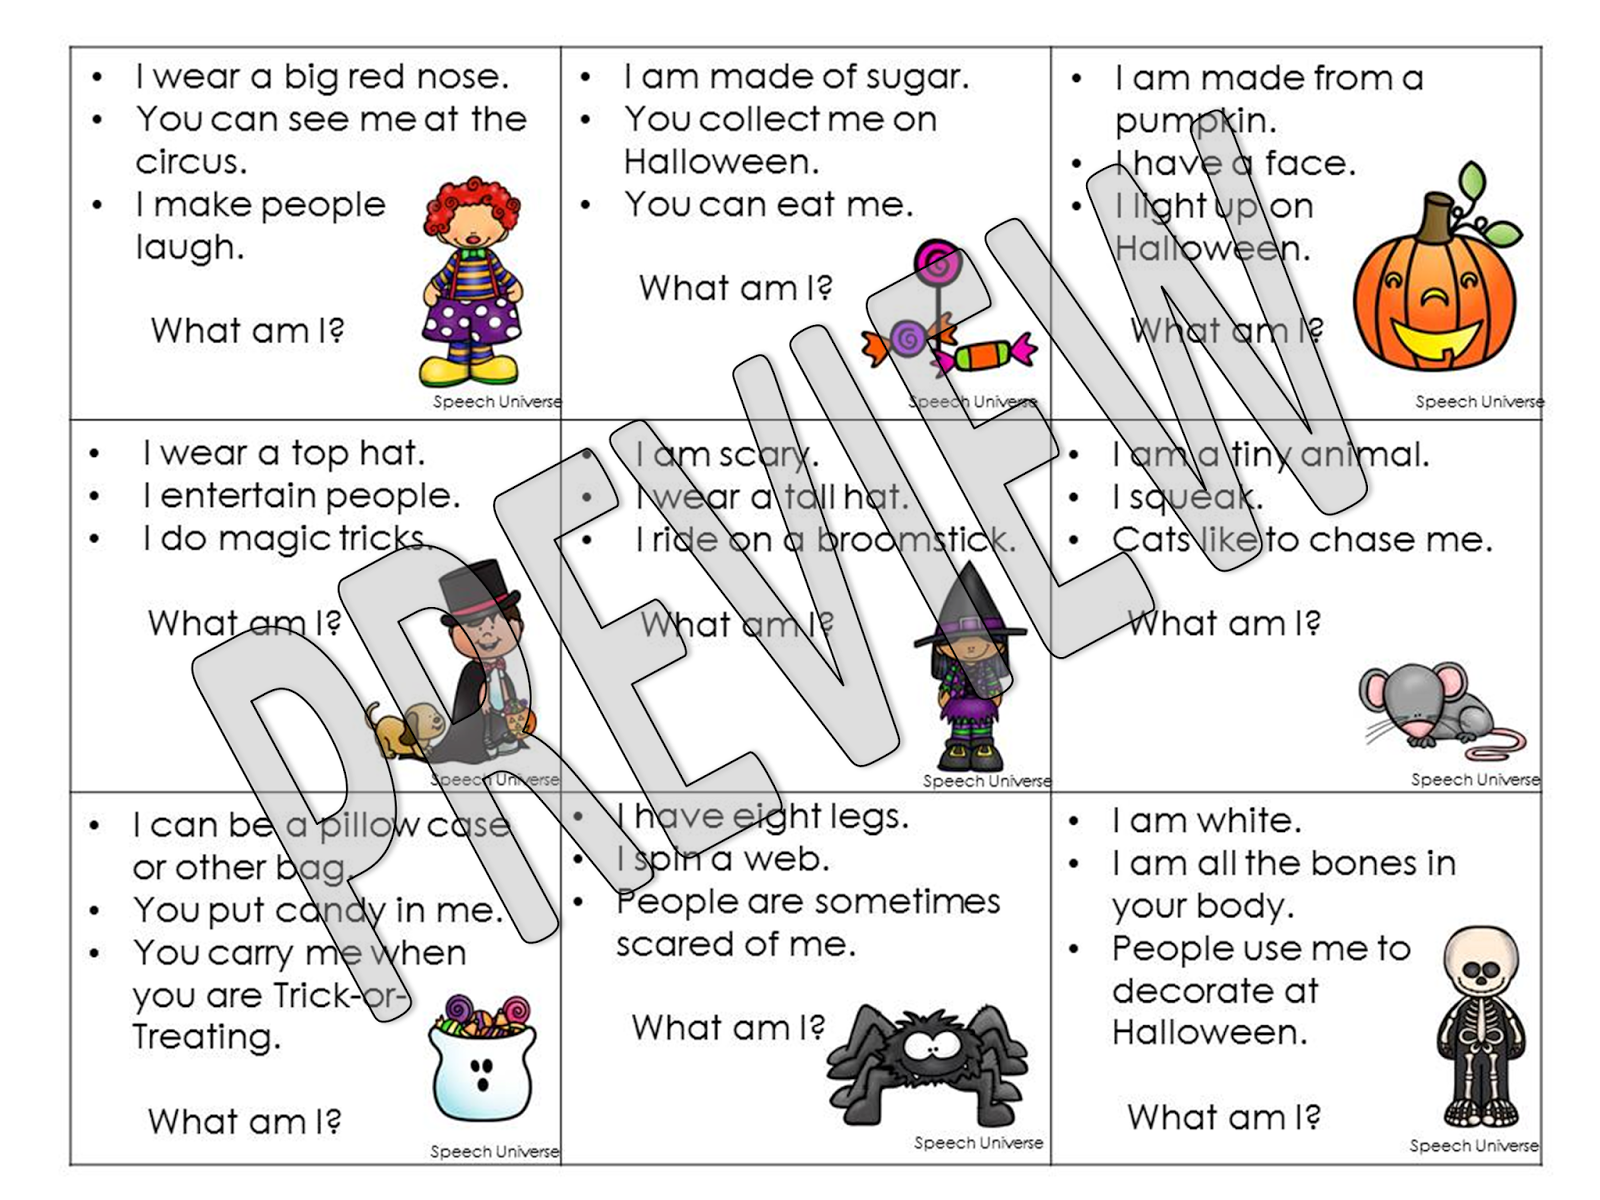 Worksheets Auditory Memory Worksheets 2017speech universe 2017 auditory memory for halloween stories there are 12 included in this packet each story is 2 3 sentences length three comprehension